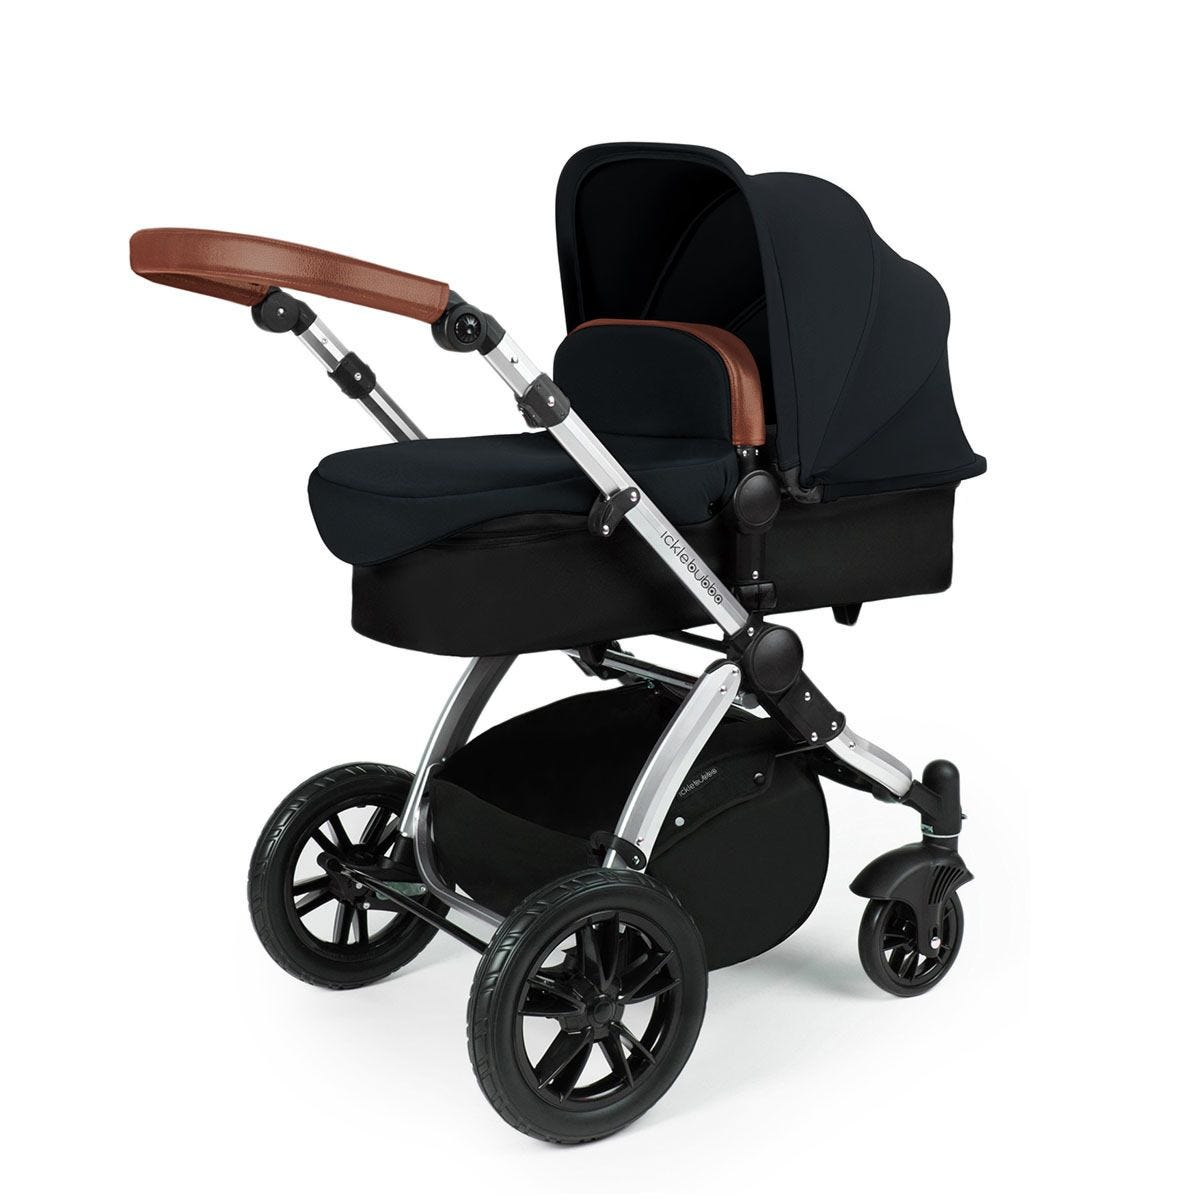 Ickle Bubba Stomp V3 2 in 1 Pushchair - Black on Silver with Tan Handles